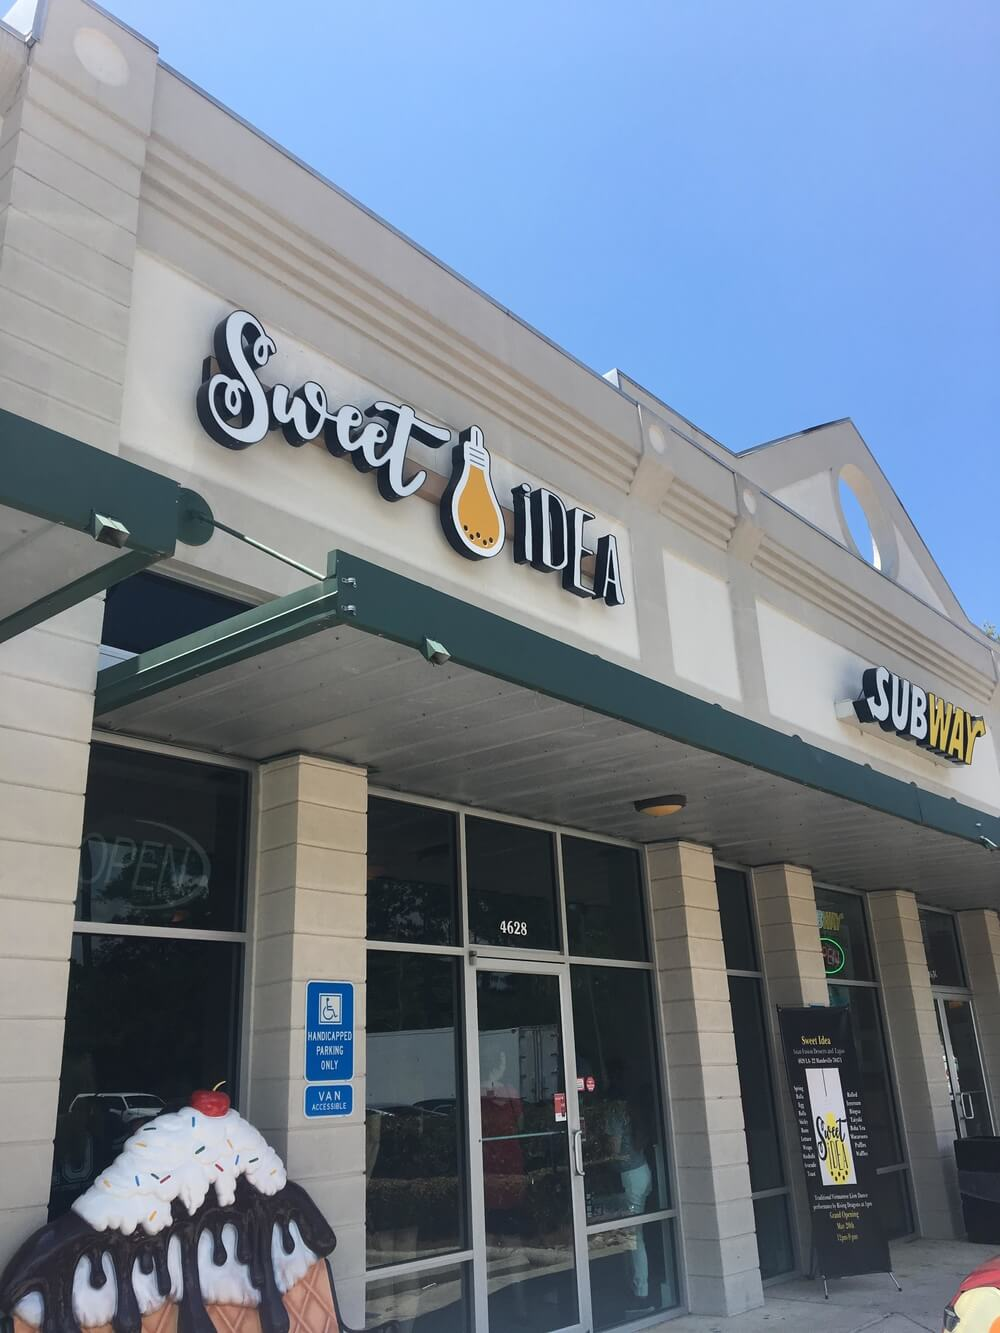 Seven New Restaurants Coming to West St. Tammany Parish